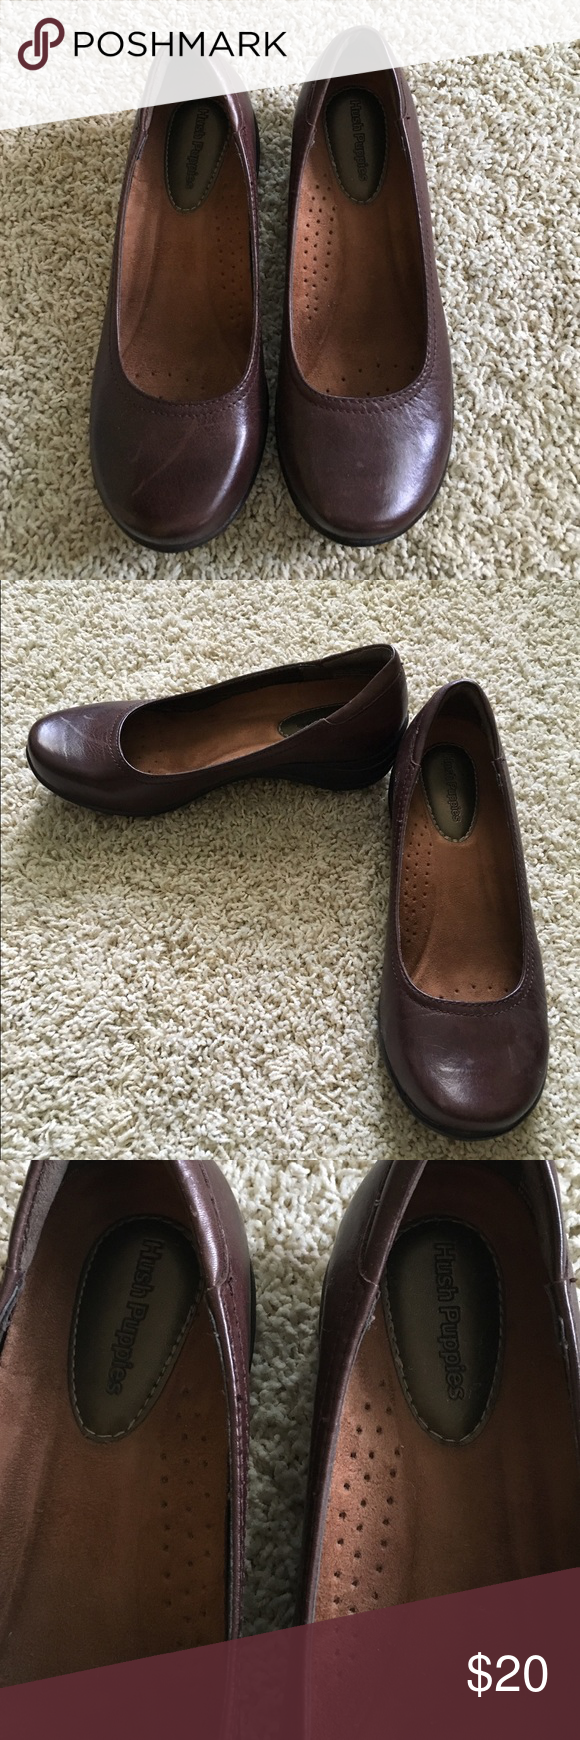 Hush Puppies leather flats. Hush Puppies leather flats.  These have great arch support & ate in excellent condition, perfect for work. Hush Puppies Shoes Flats & Loafers